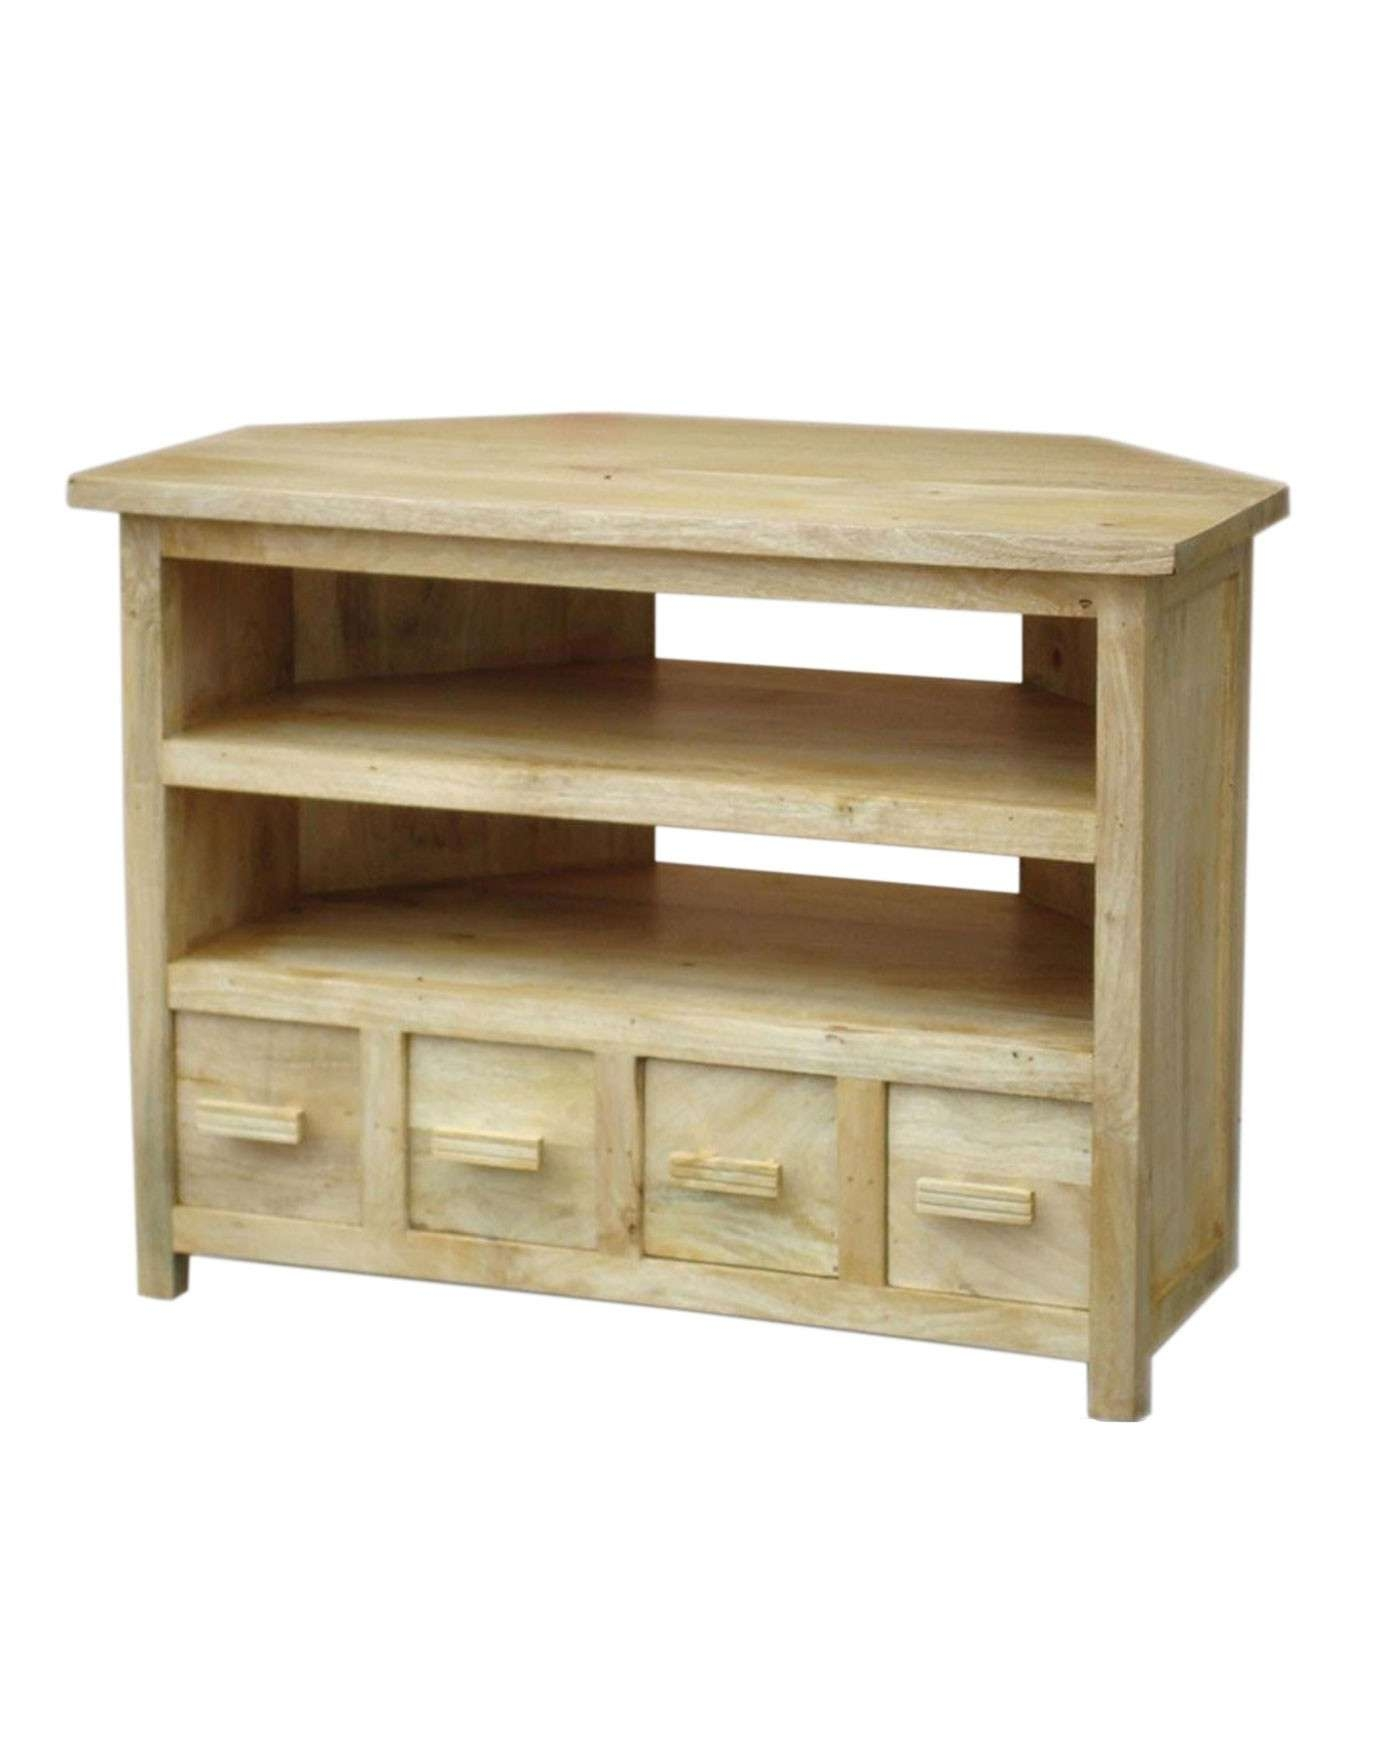 Tall Corner Tvt Mangat Unit Oak Shade2 1 Stand Walmart Uk Stands Within Oak Tv Cabinets With Doors (View 14 of 20)